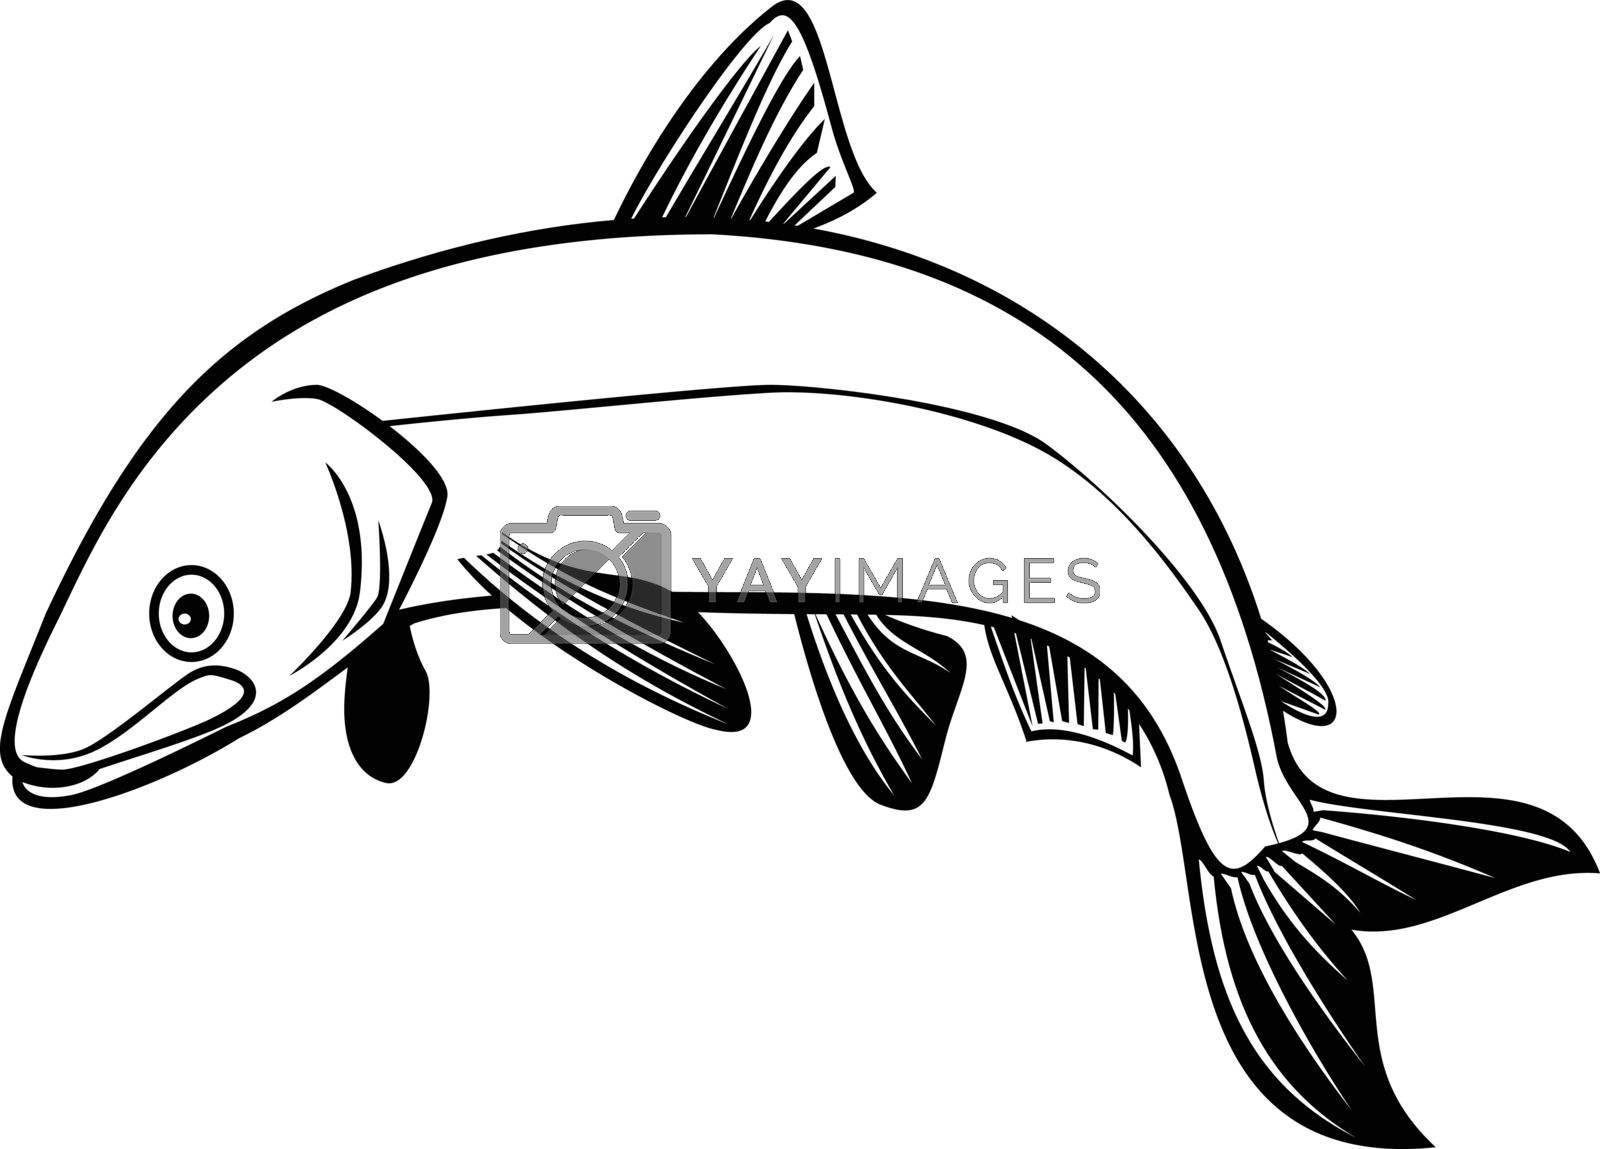 Retro style illustration of a bloater or Coregonus hoyi, a species or form of freshwater whitefish in the family Salmonidae, jumping up on isolated background done in black and white.